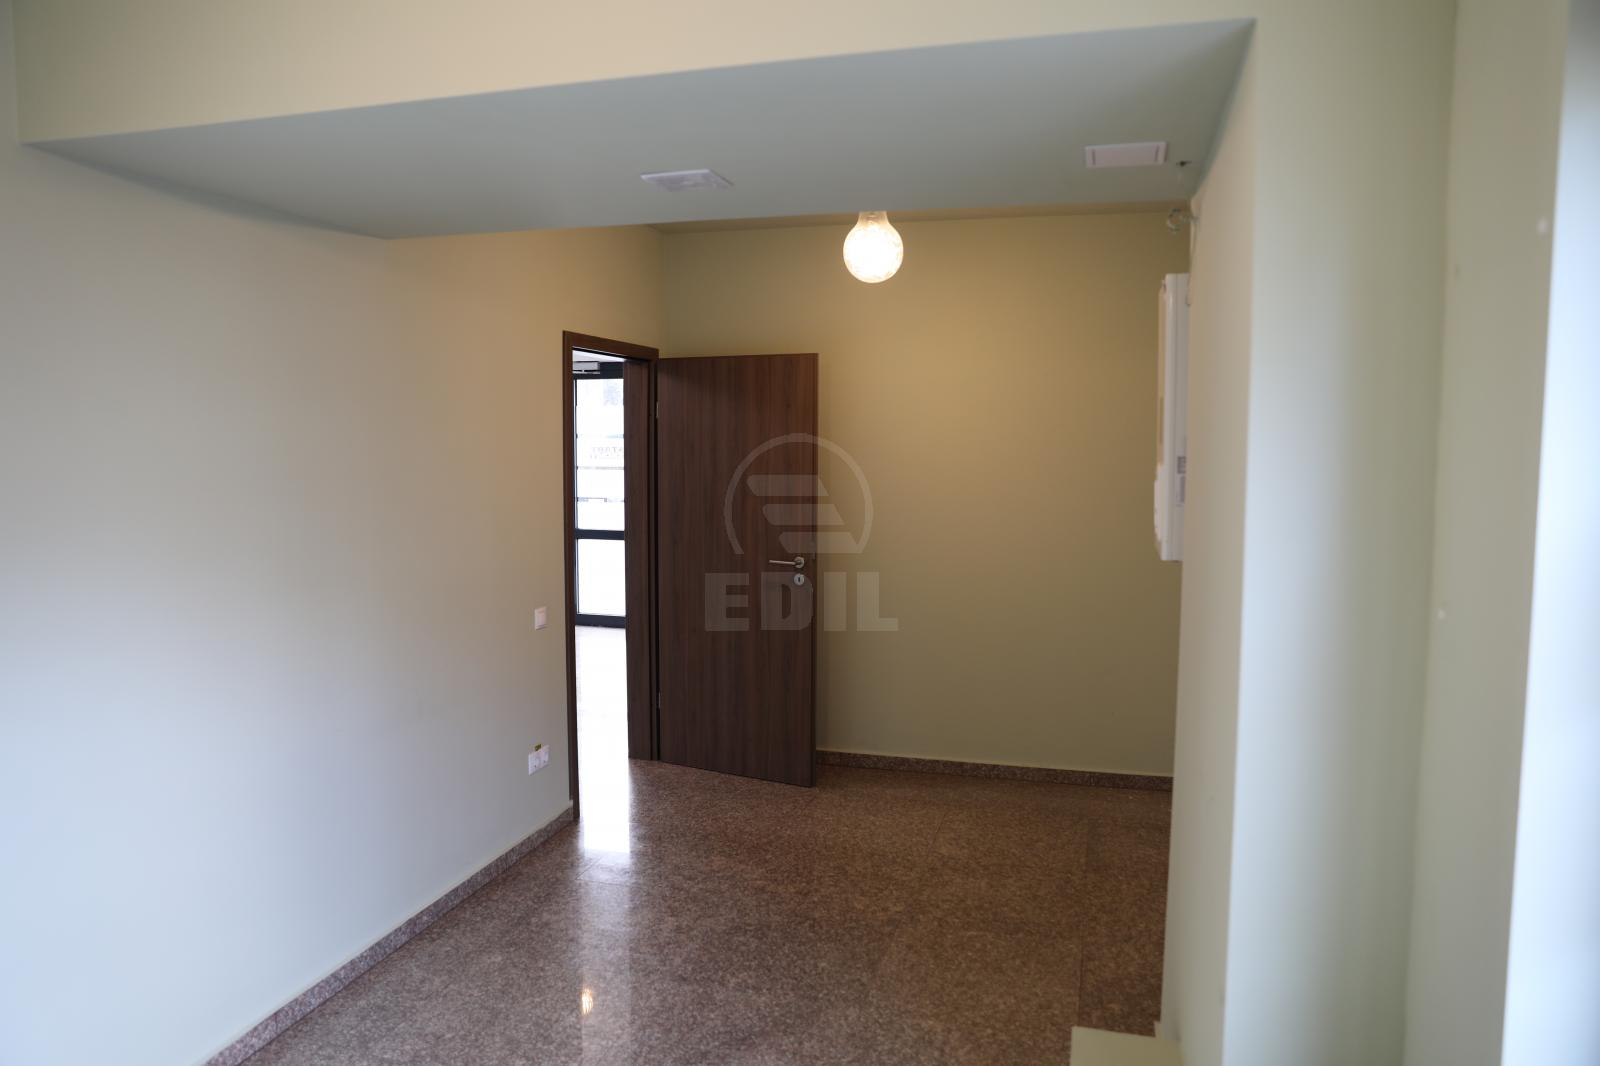 Commercial space for sale 3 rooms, SCCJ297529-14